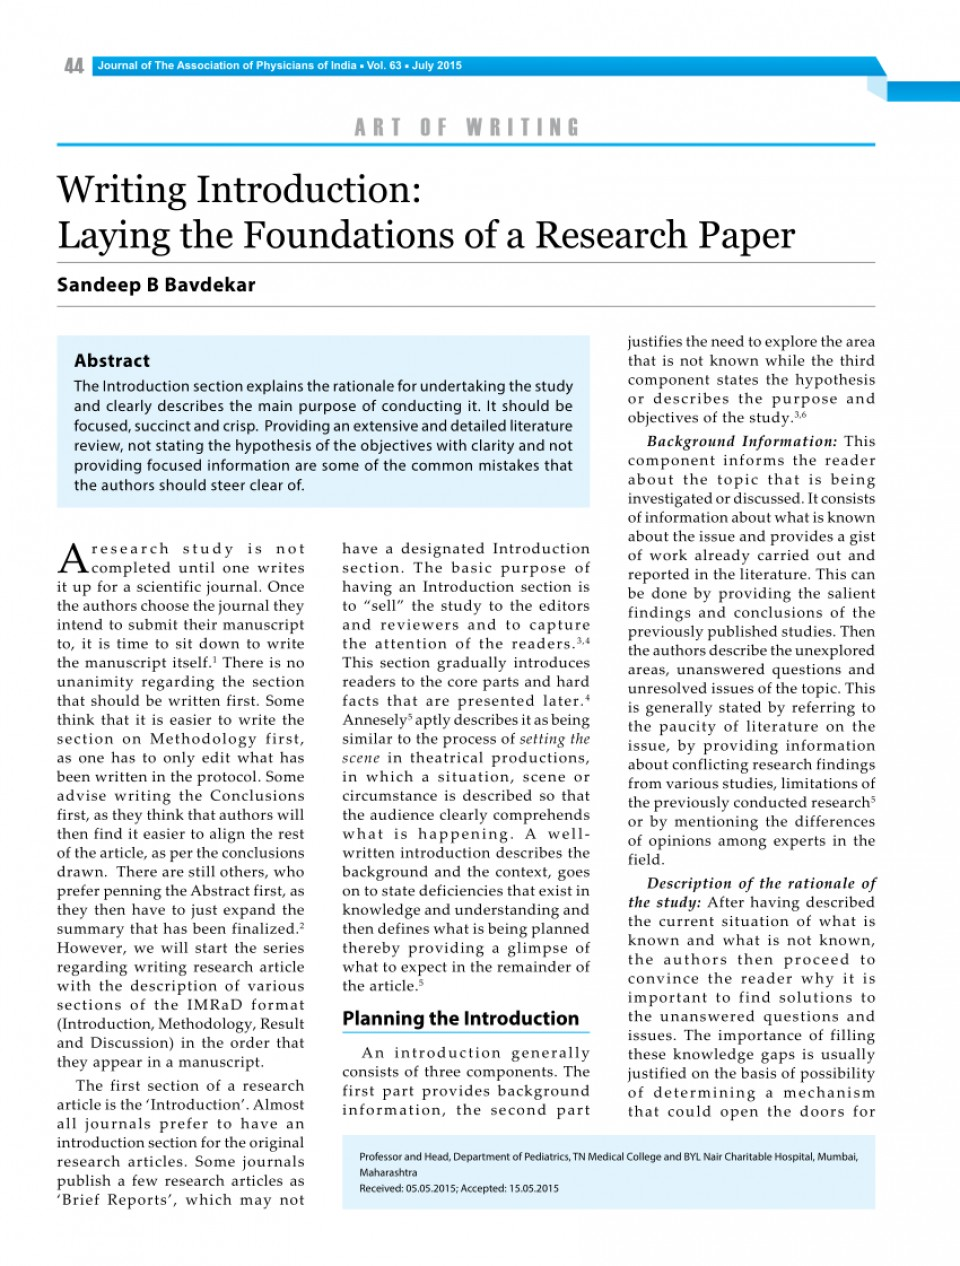 006 Example Of An Introduction For Research Paper Excellent A Apa Sample In Pdf 960